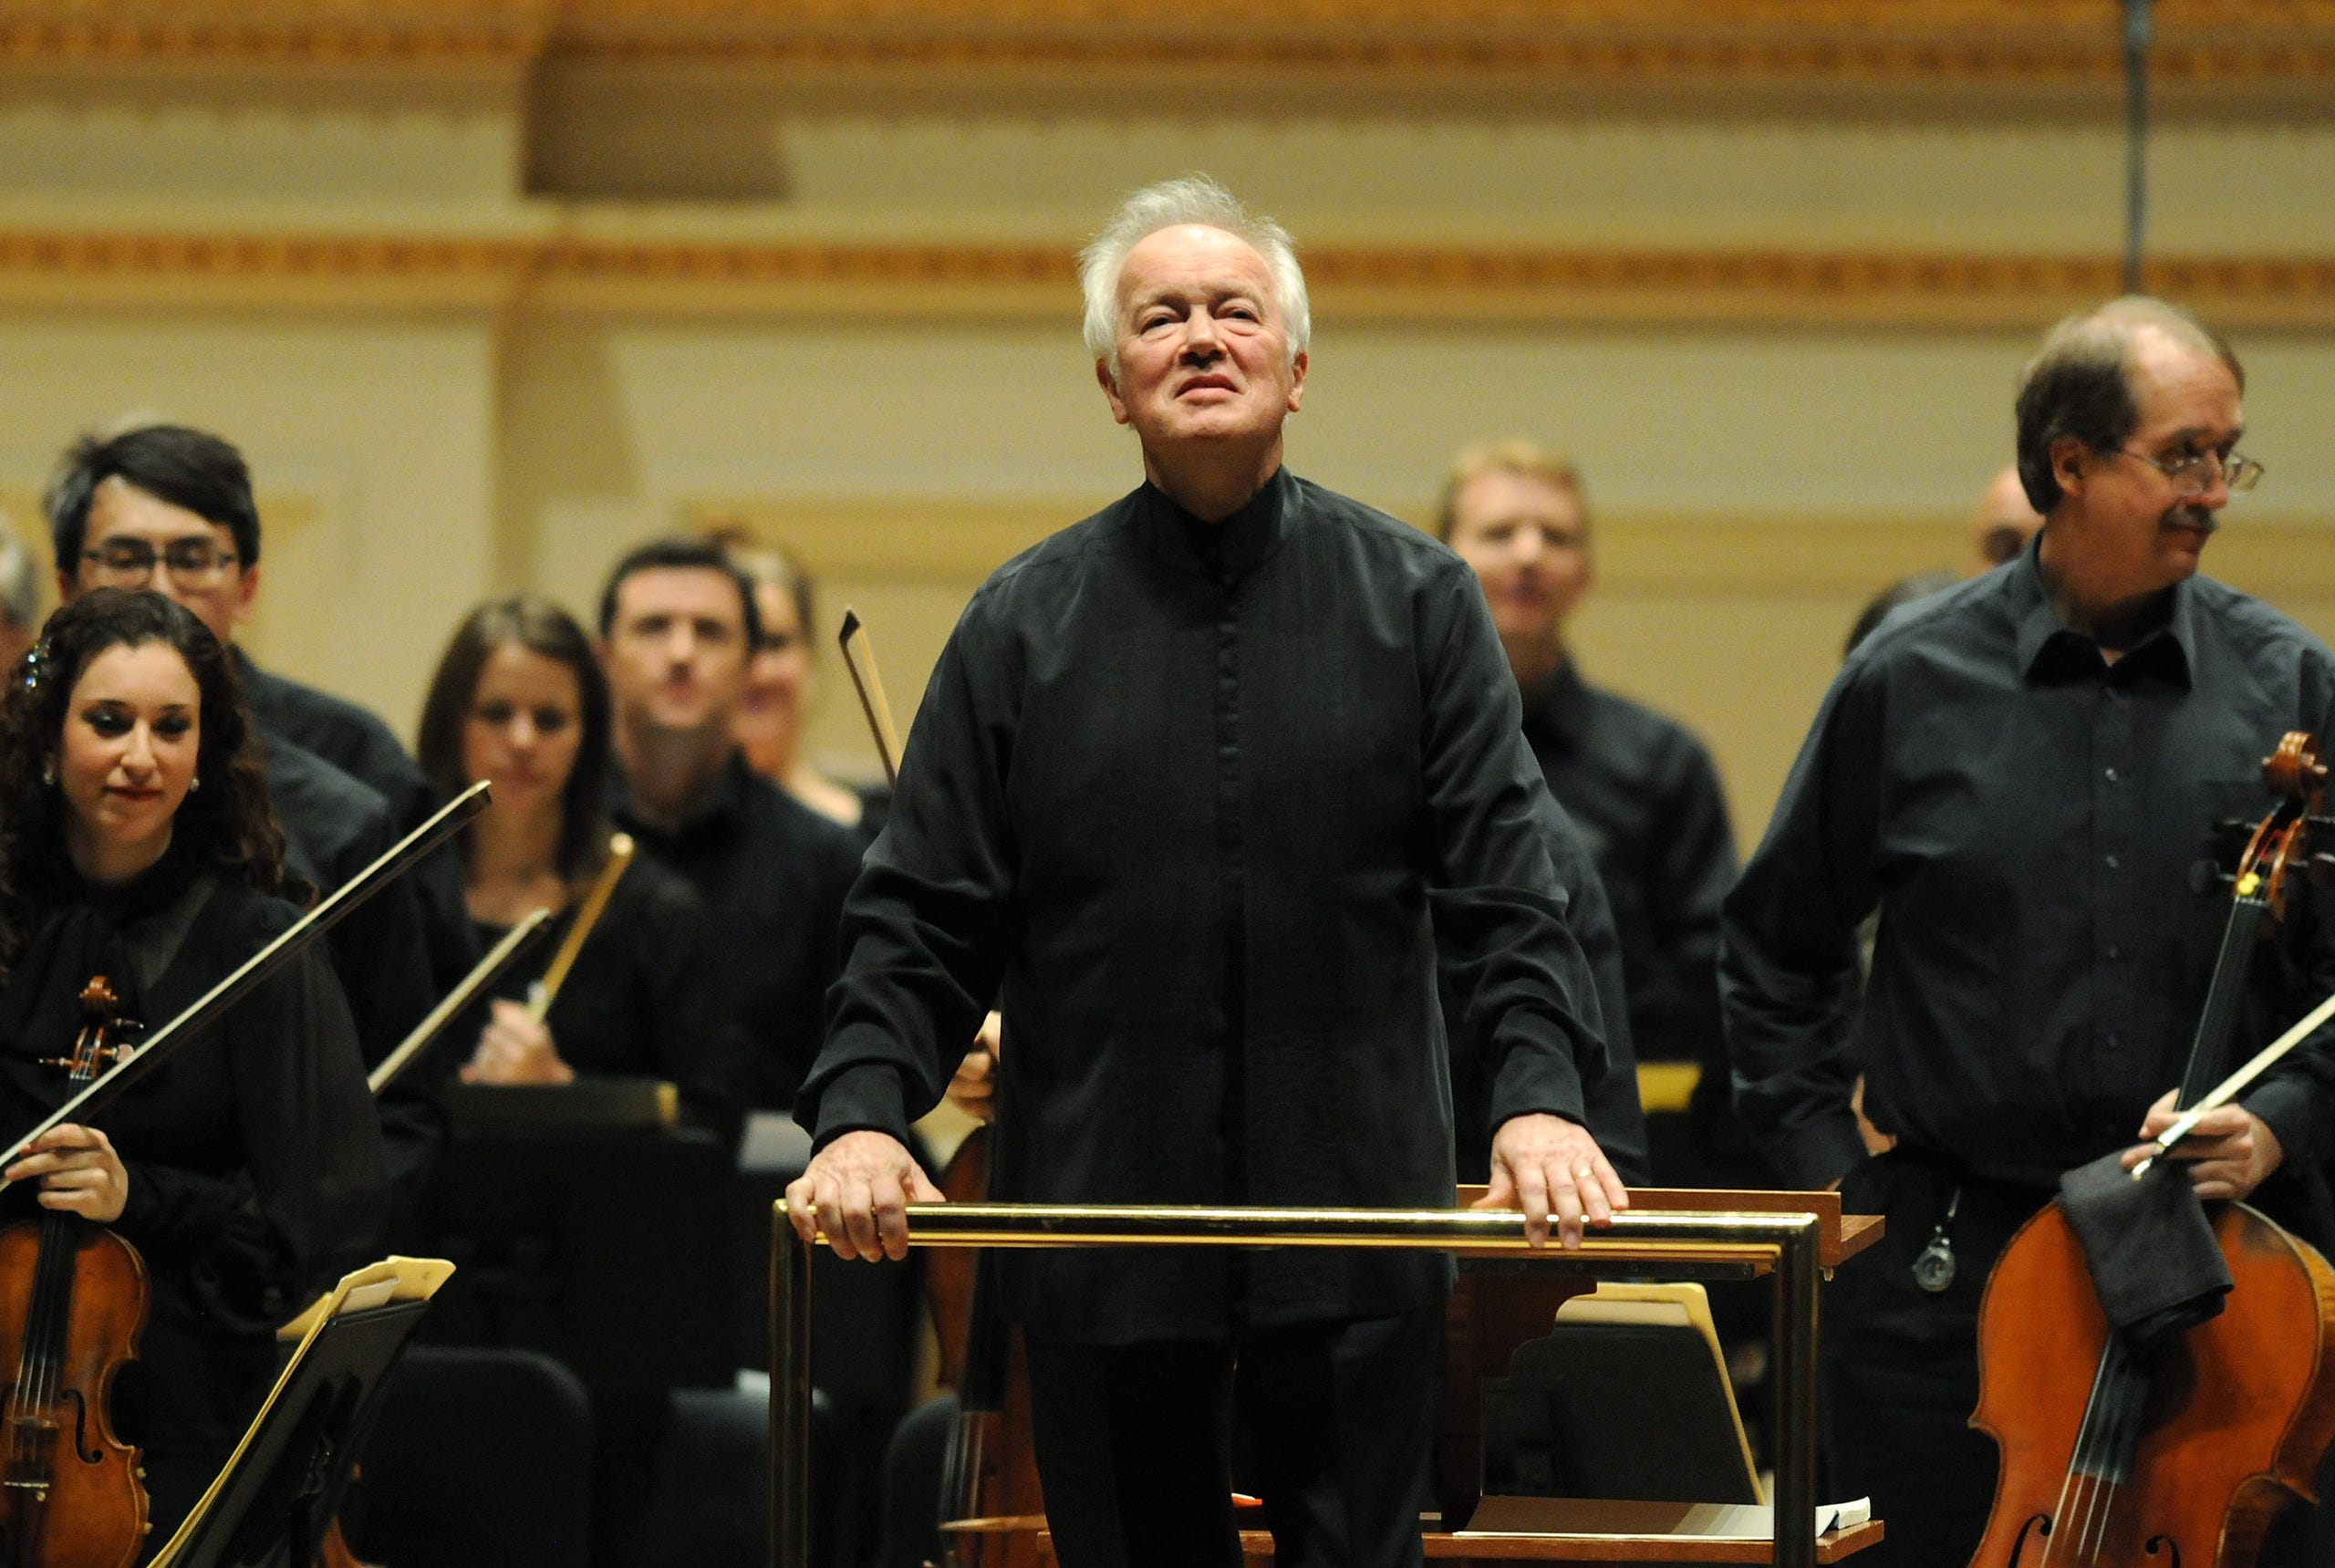 Milwaukee Symphony Music Director Edo de Waart acknowledges the audience during a 2012 concert at Carnegie Hall in New York.